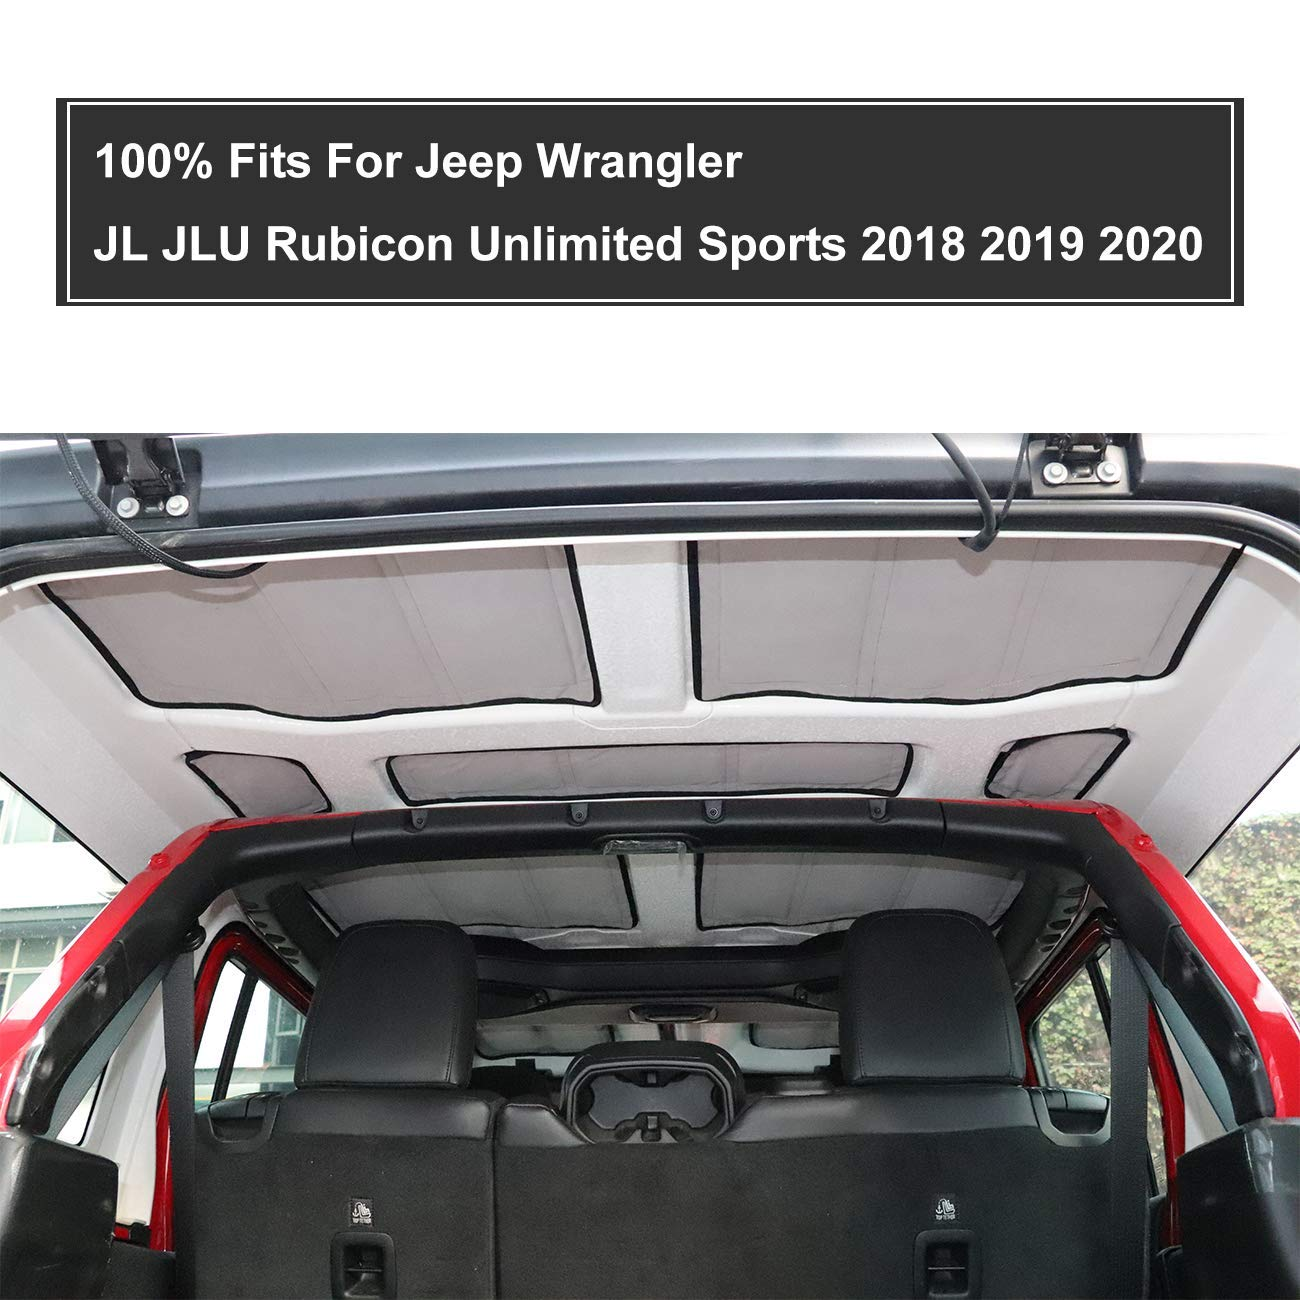 MFC 9 PCS Headliner Roof Heat Insulation and Sound Insulation Cotton Kits For Jeep Wrangler JL Interior Accessories 4-Door 2018 2019 2020